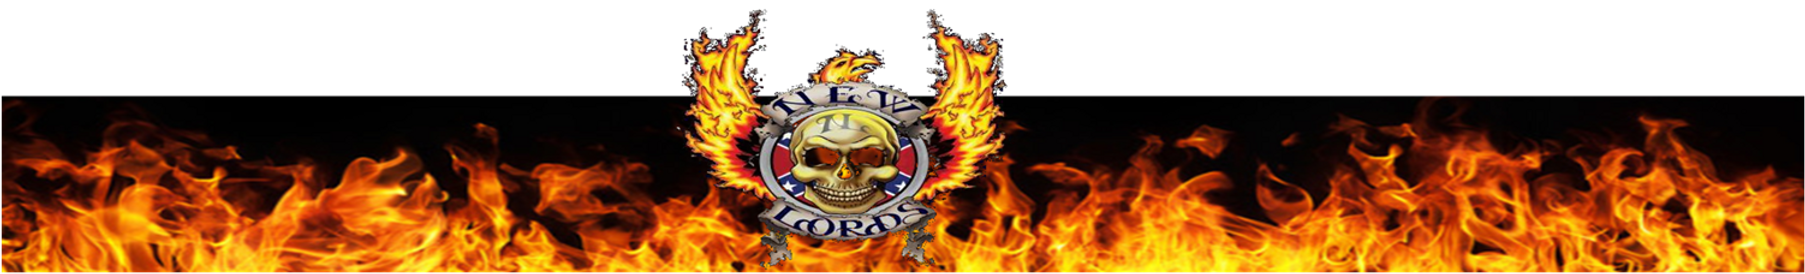 New Lords Flaming Logo Banner V2.png